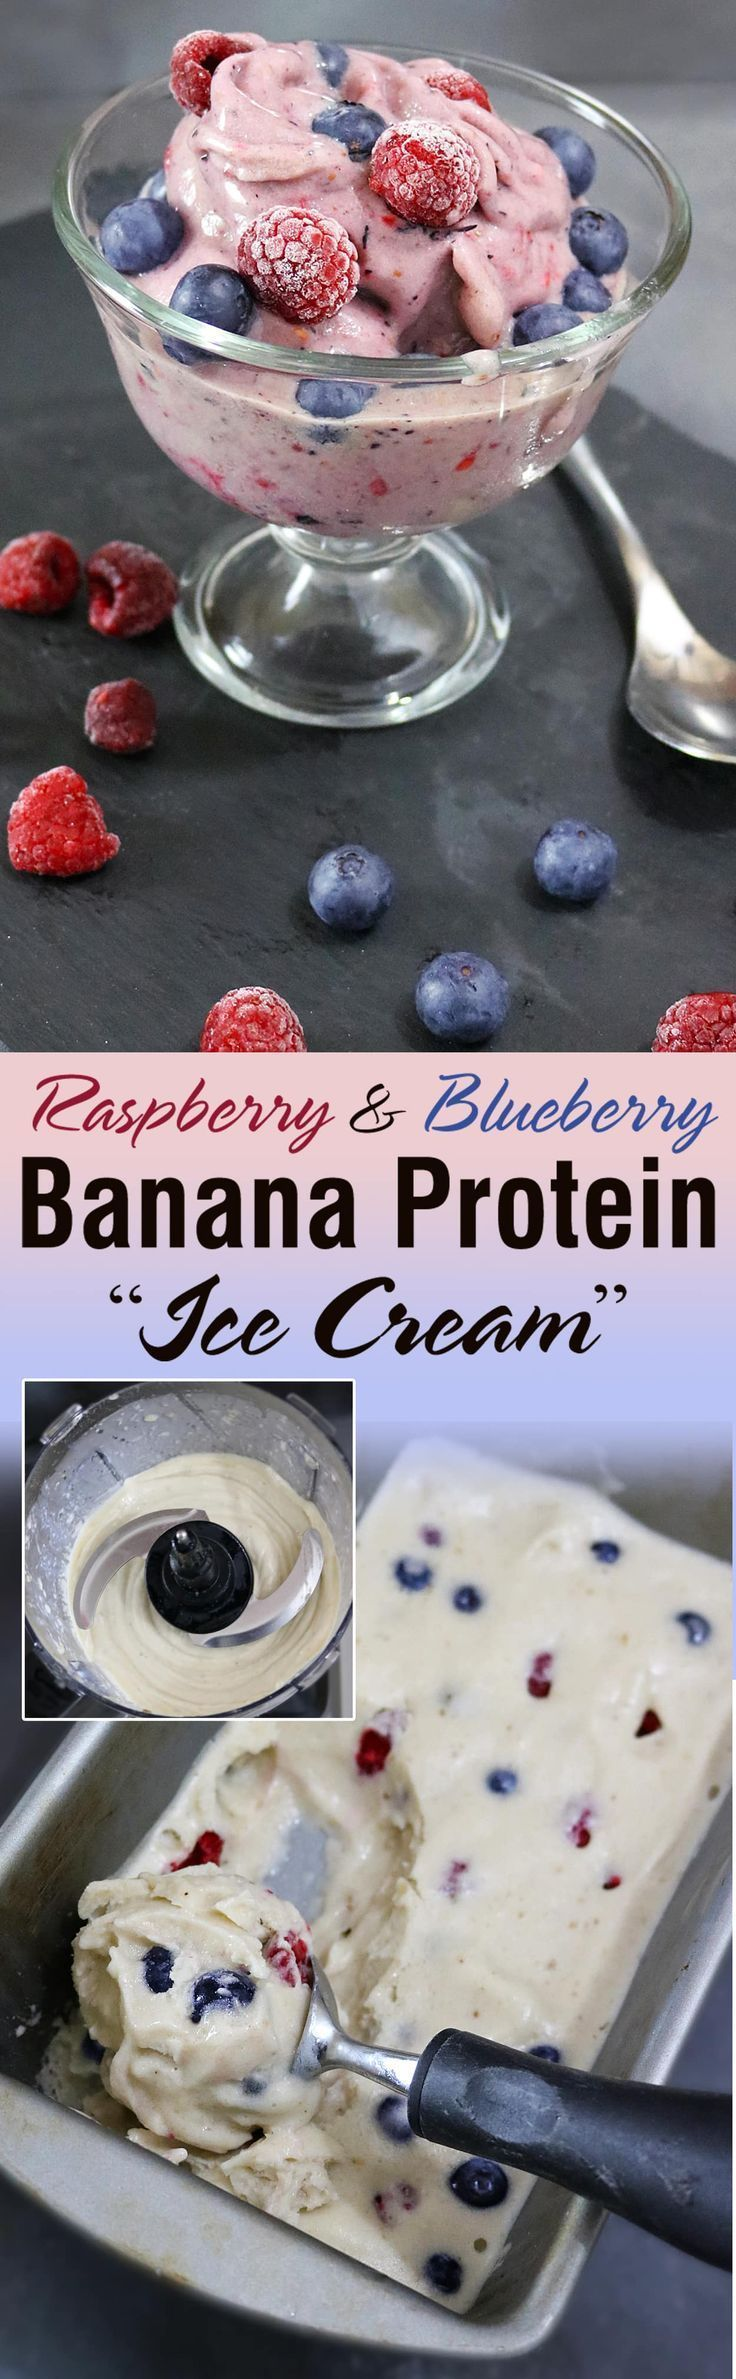 "Raspberry & Blueberry Banana Protein ""Ice Cream""   - Dessert - #banana #Blueberry #cream #dessert #ice #Protein #raspberry #proteinicecream Raspberry & Blueberry Banana Protein ""Ice Cream""   - Dessert - #banana #Blueberry #cream #dessert #ice #Protein #raspberry #proteinicecream Raspberry & Blueberry Banana Protein ""Ice Cream""   - Dessert - #banana #Blueberry #cream #dessert #ice #Protein #raspberry #proteinicecream Raspberry & Blueberry Banana Protein ""Ice Cream""   - Dessert - # #proteinicecream"